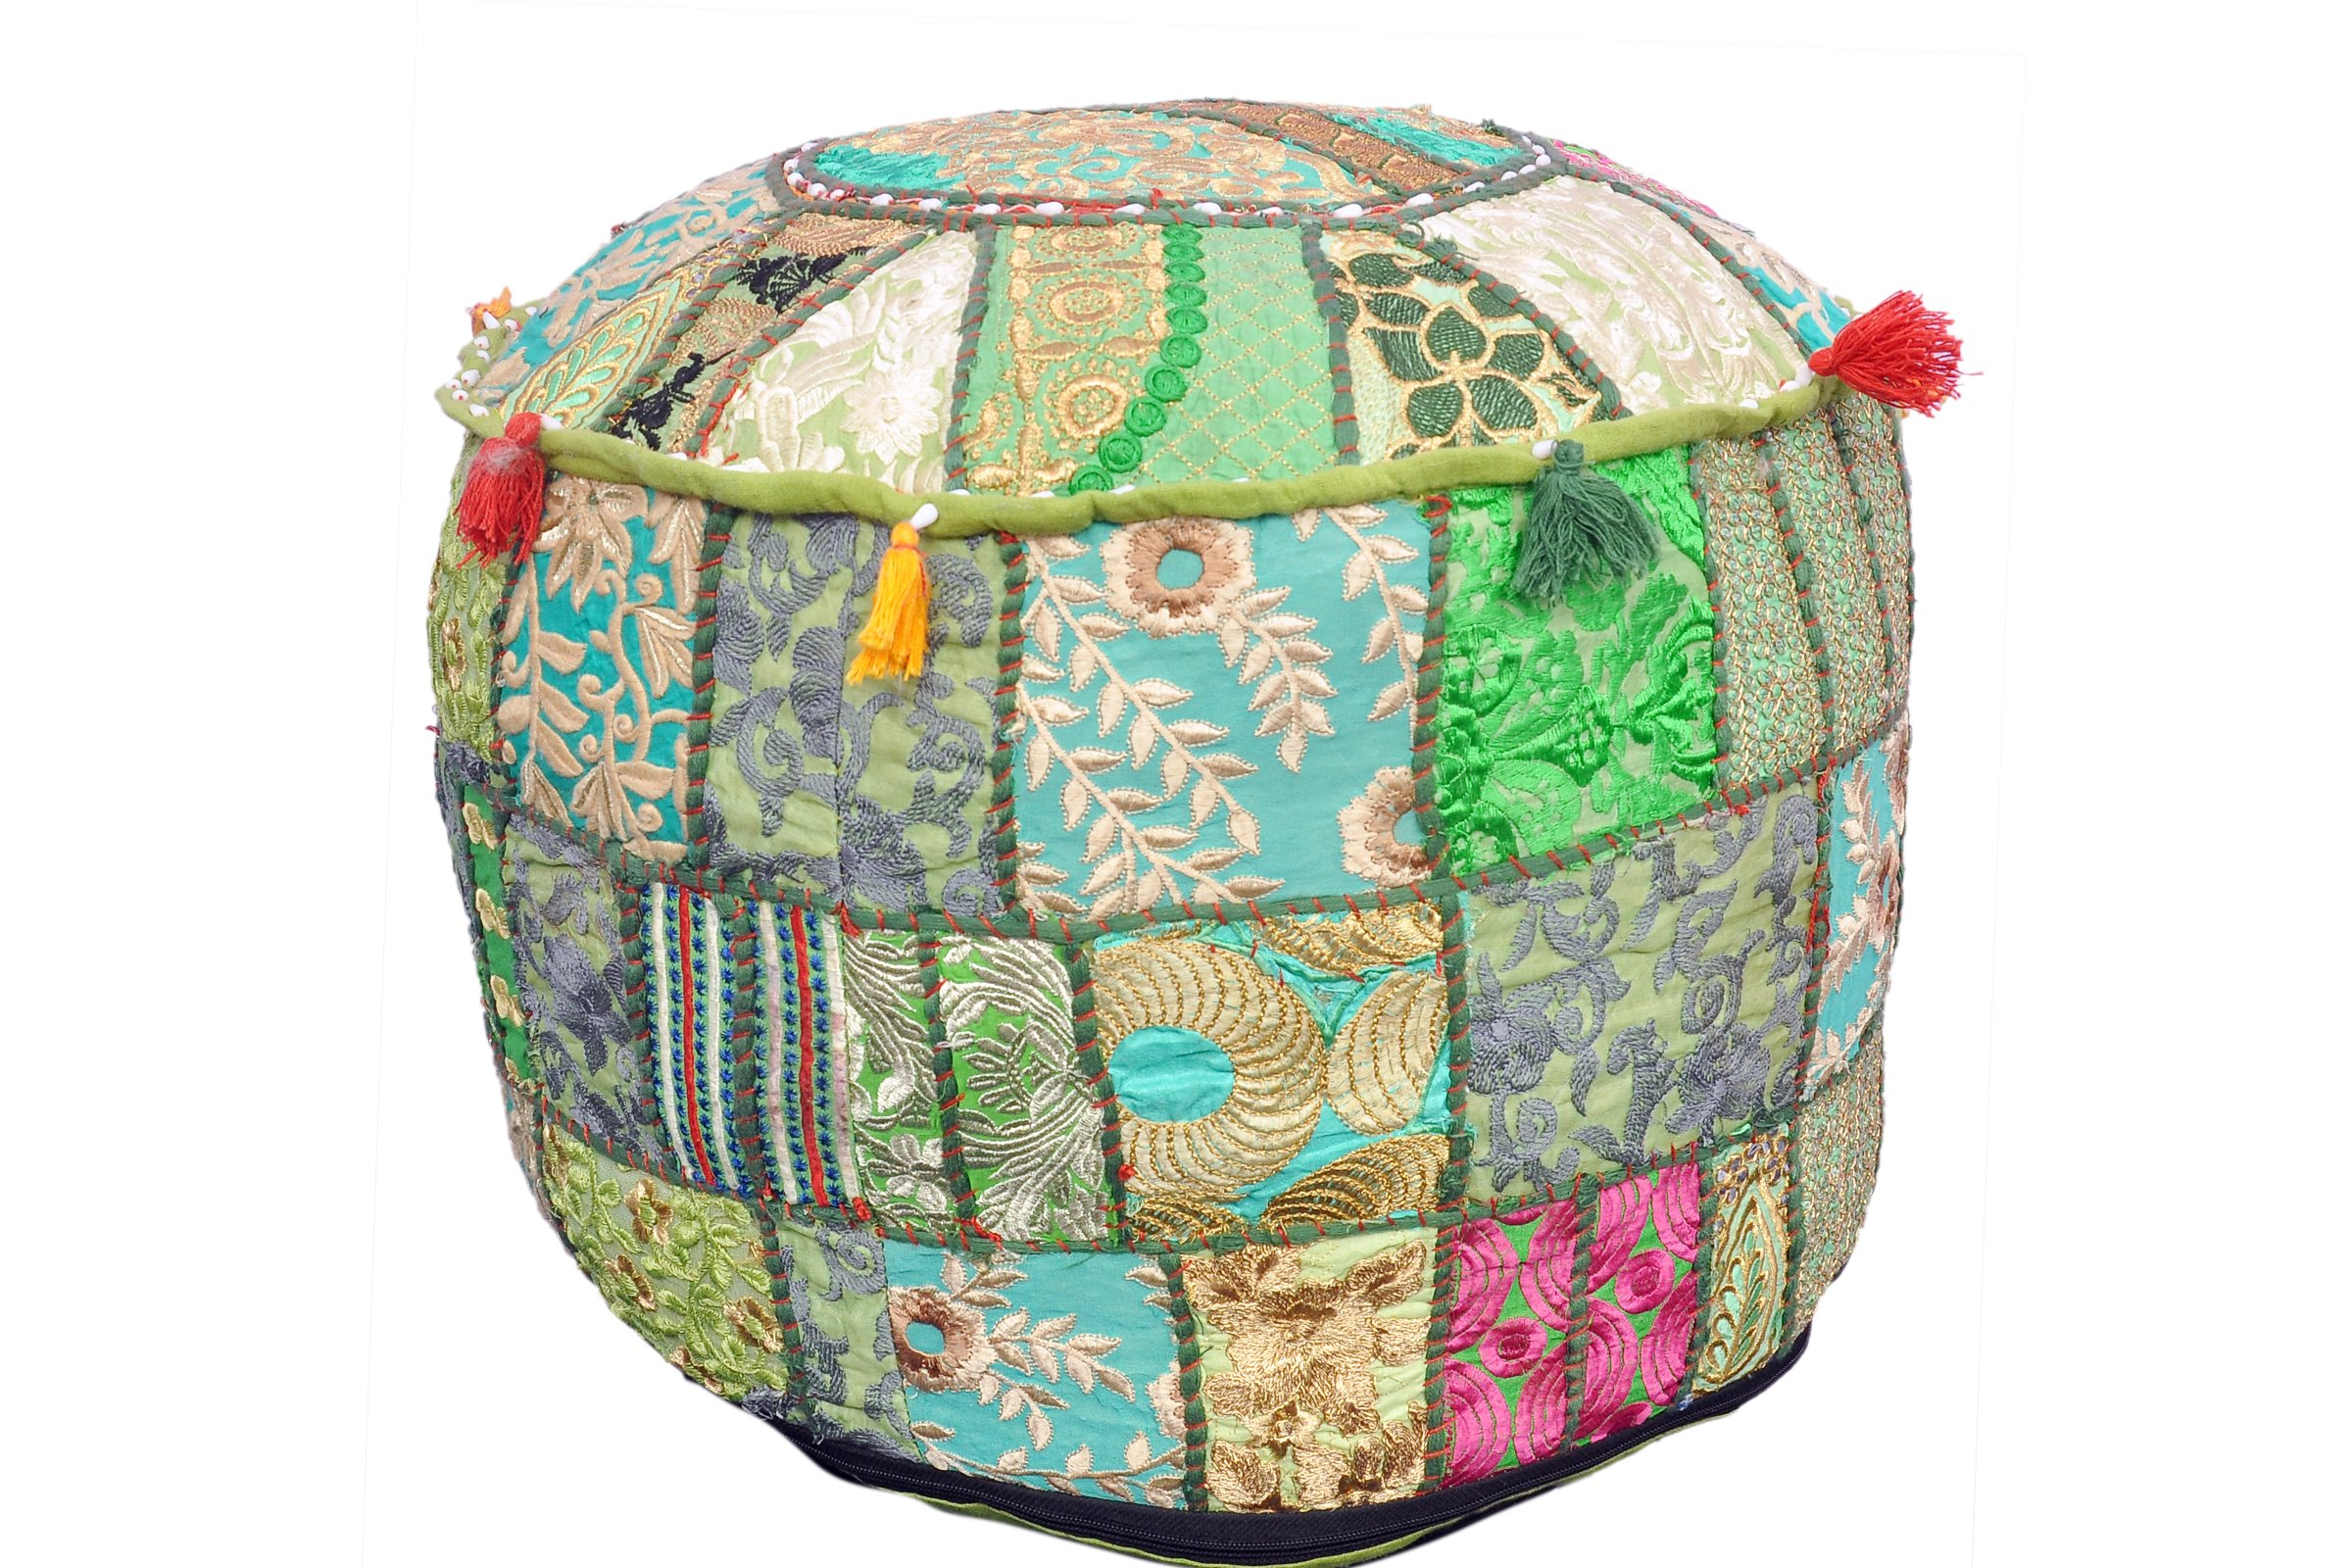 Marudhara Fashion Ottoman Pouf Cover Green Color Handmade Traditional Vintage Ottoman Cover Indian Pouf Floor/Foot Stool, Decorative Chair Cover,100% Cotton Art Decor Cushion, 22X14 By